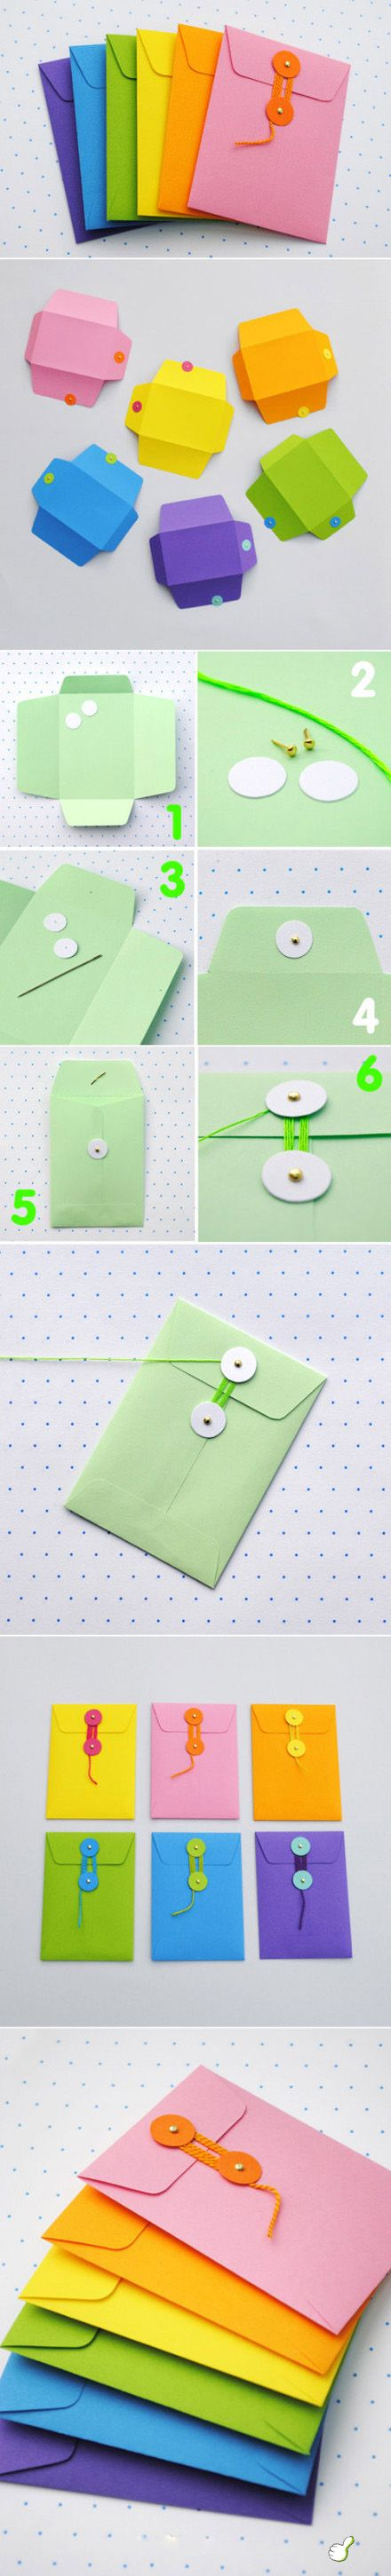 DIY Envelopes diy craft crafts easy crafts craft idea diy ideas home diy easy diy home crafts diy craft paper crafts